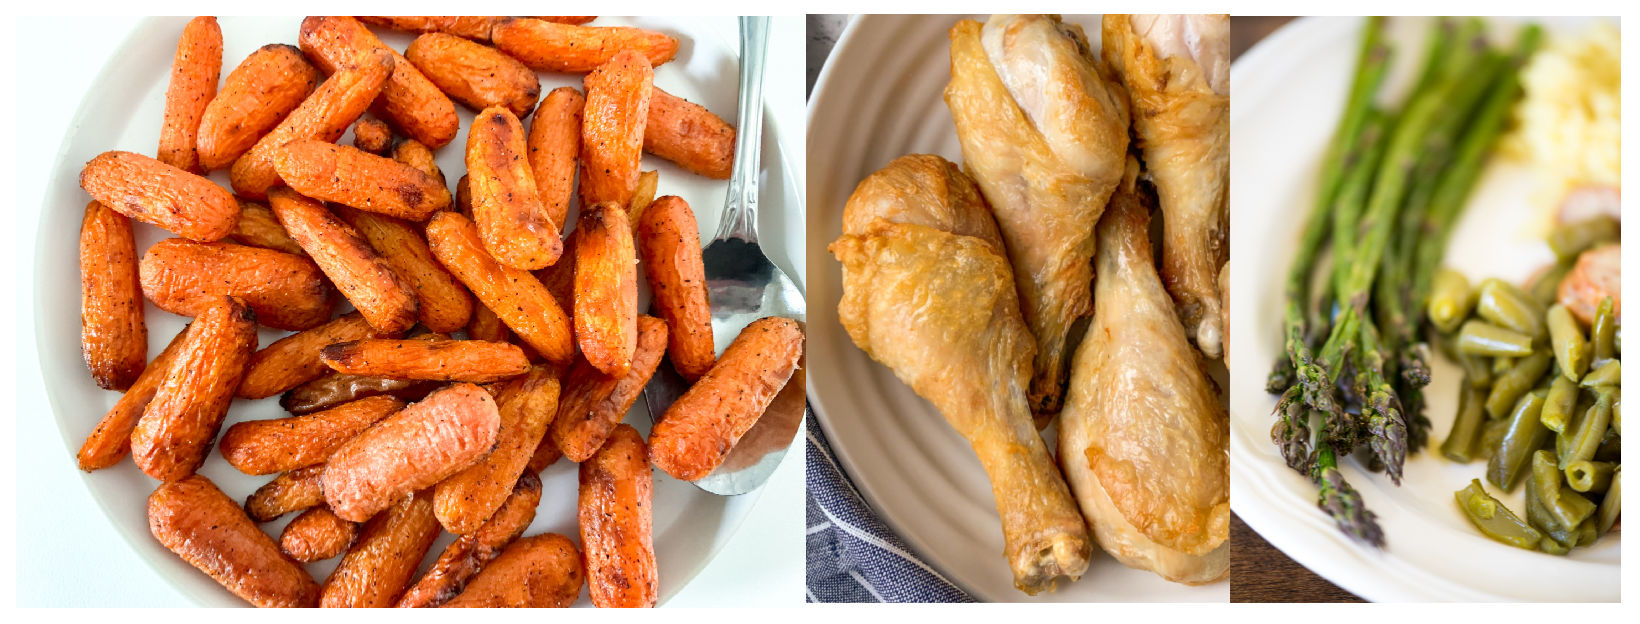 Easy Air Fryer Recipes (Gluten-Free)